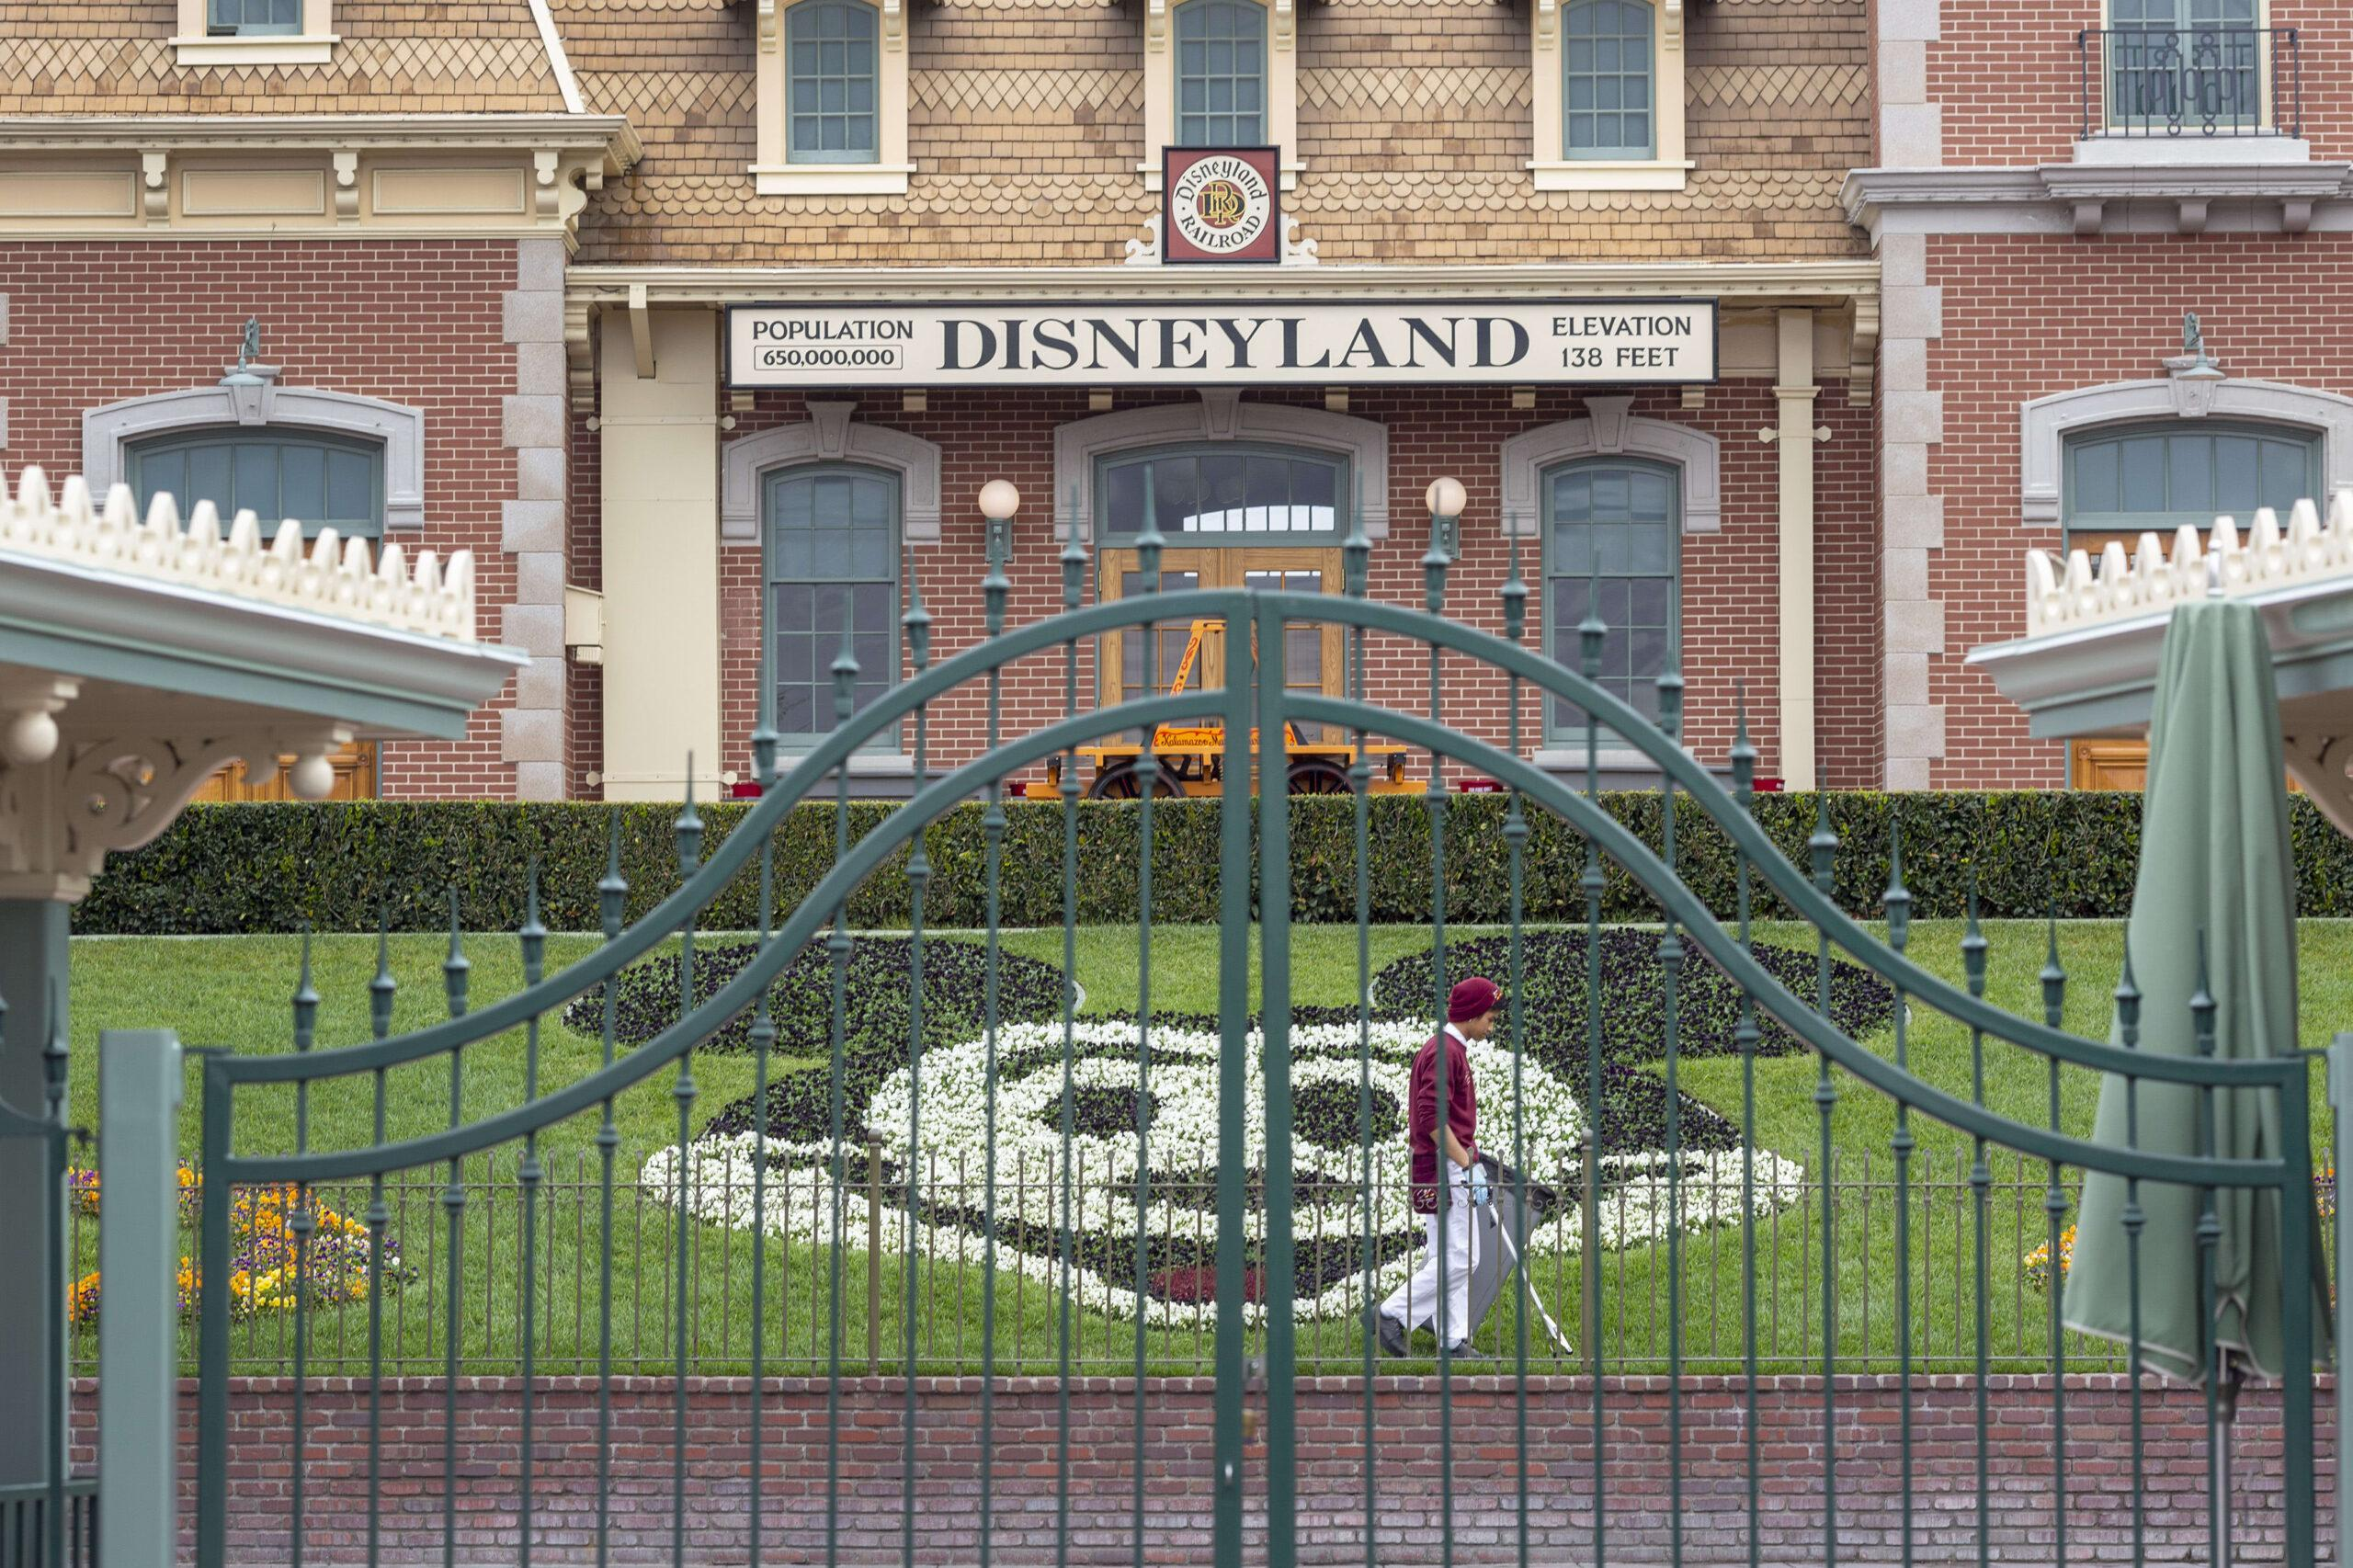 Disney increases layoffs to 32,000 workers as coronavirus batters its theme park business